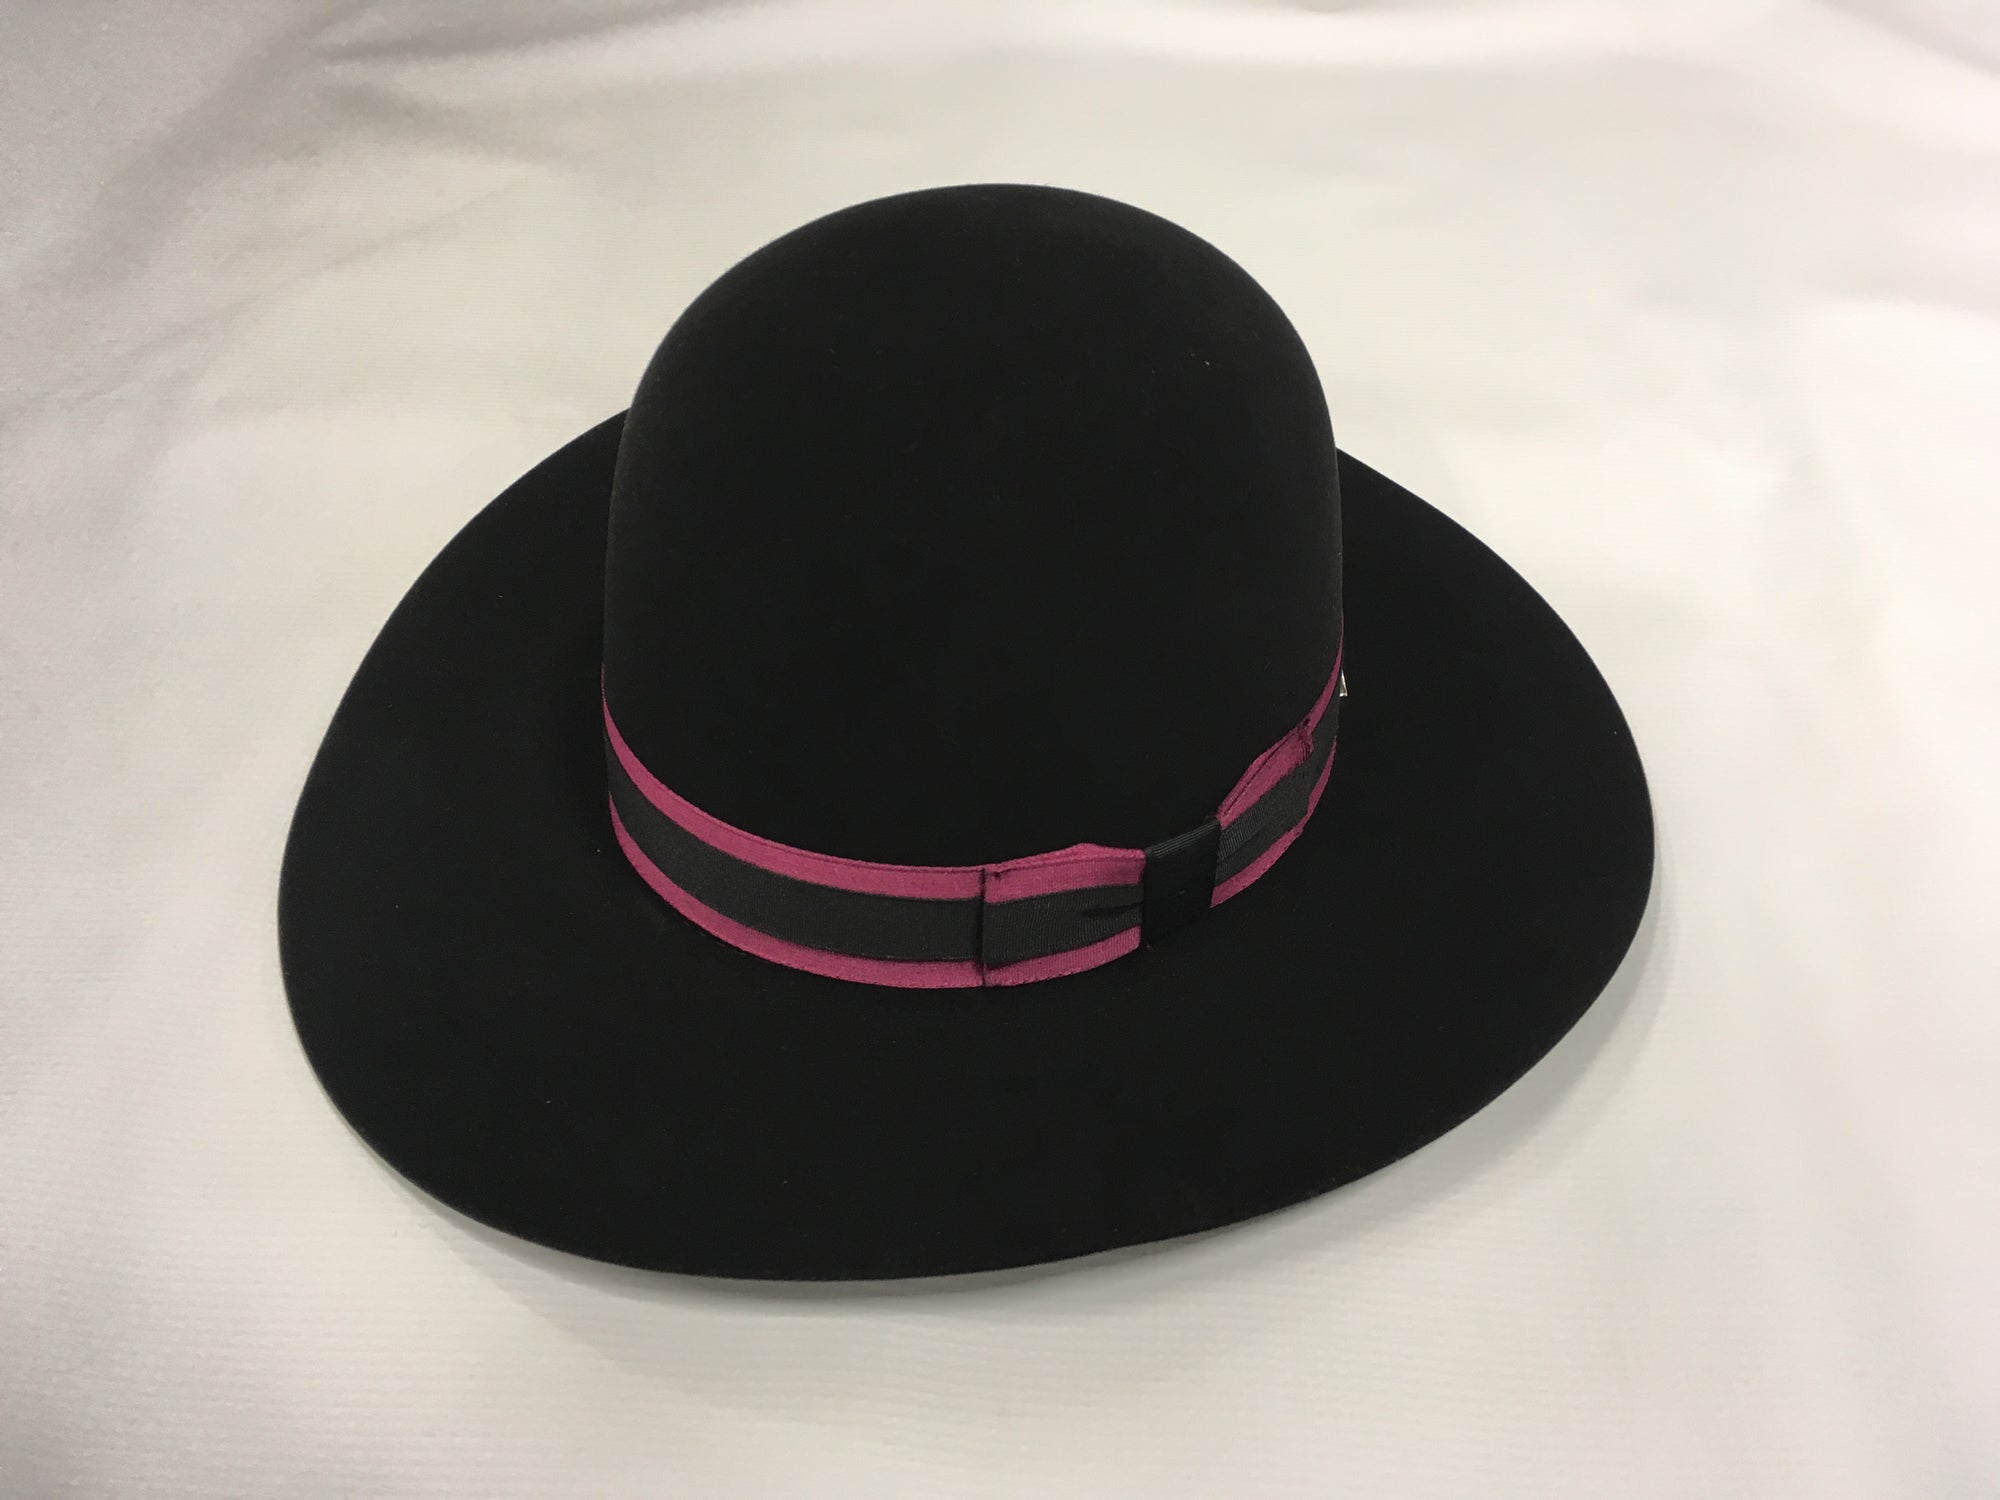 American Hat Co. Black Felt Western Hat